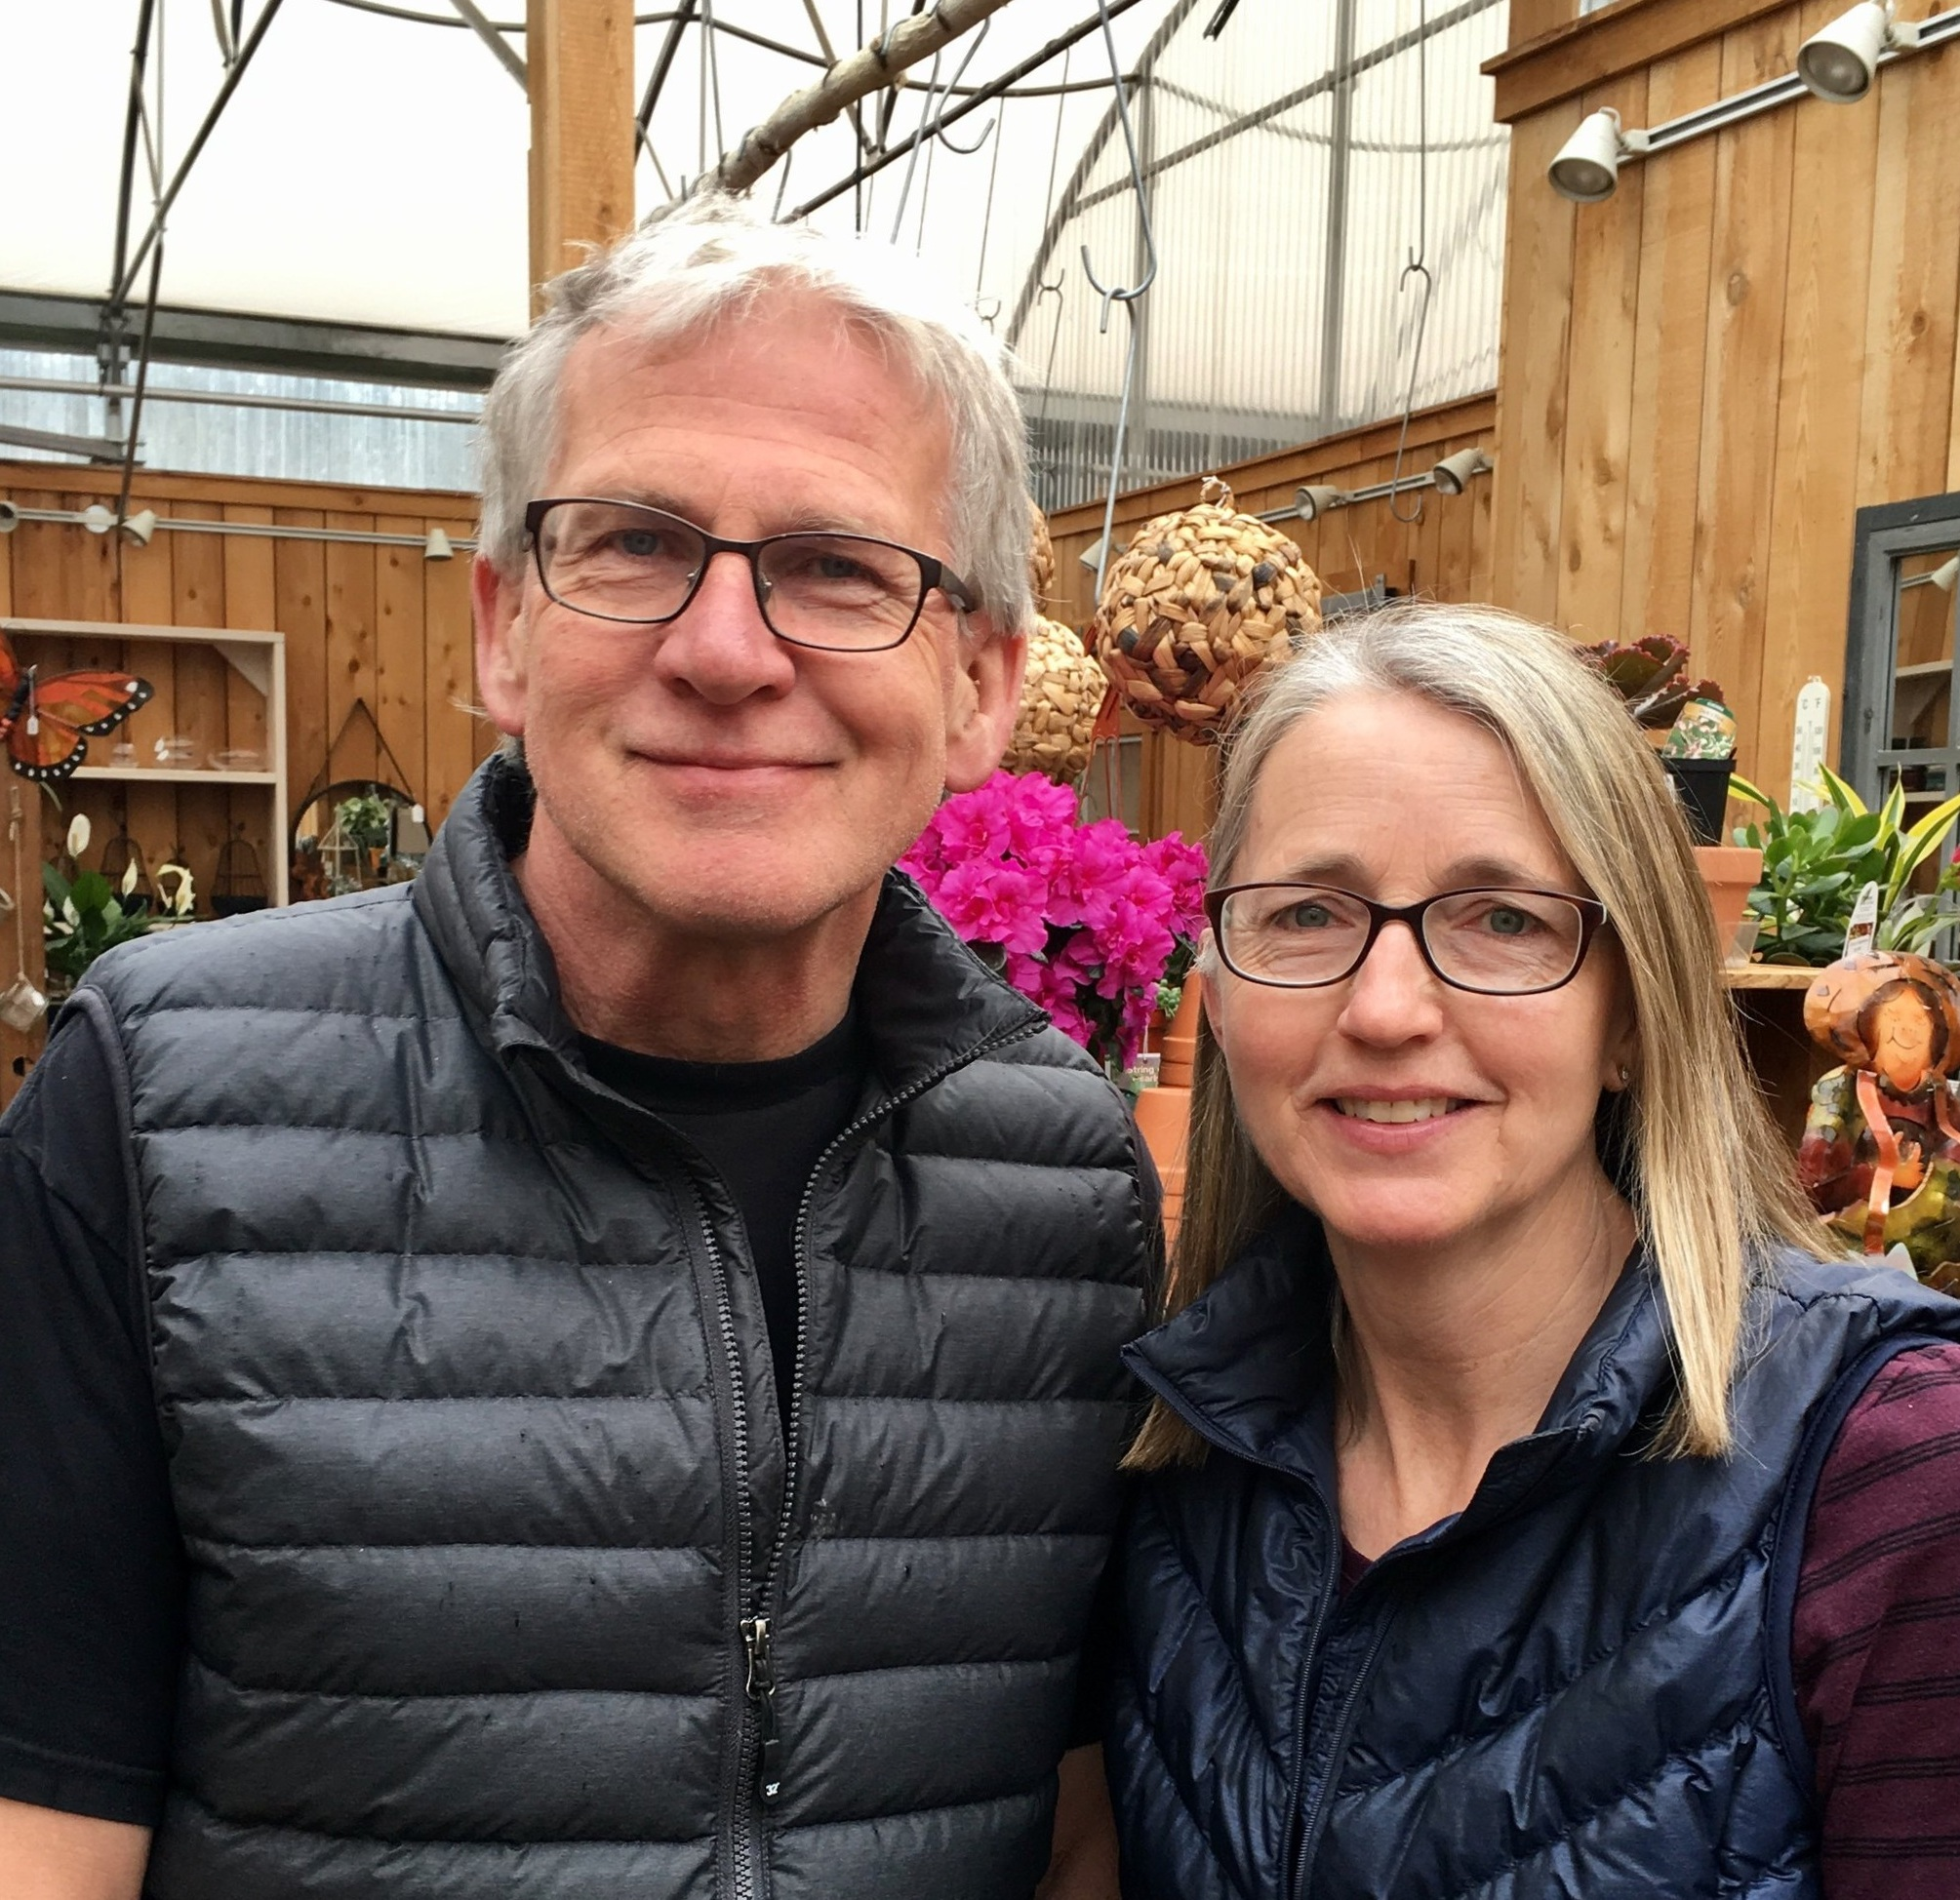 Paul & Yvonne Bulk, owners and founders of Patio Gardens